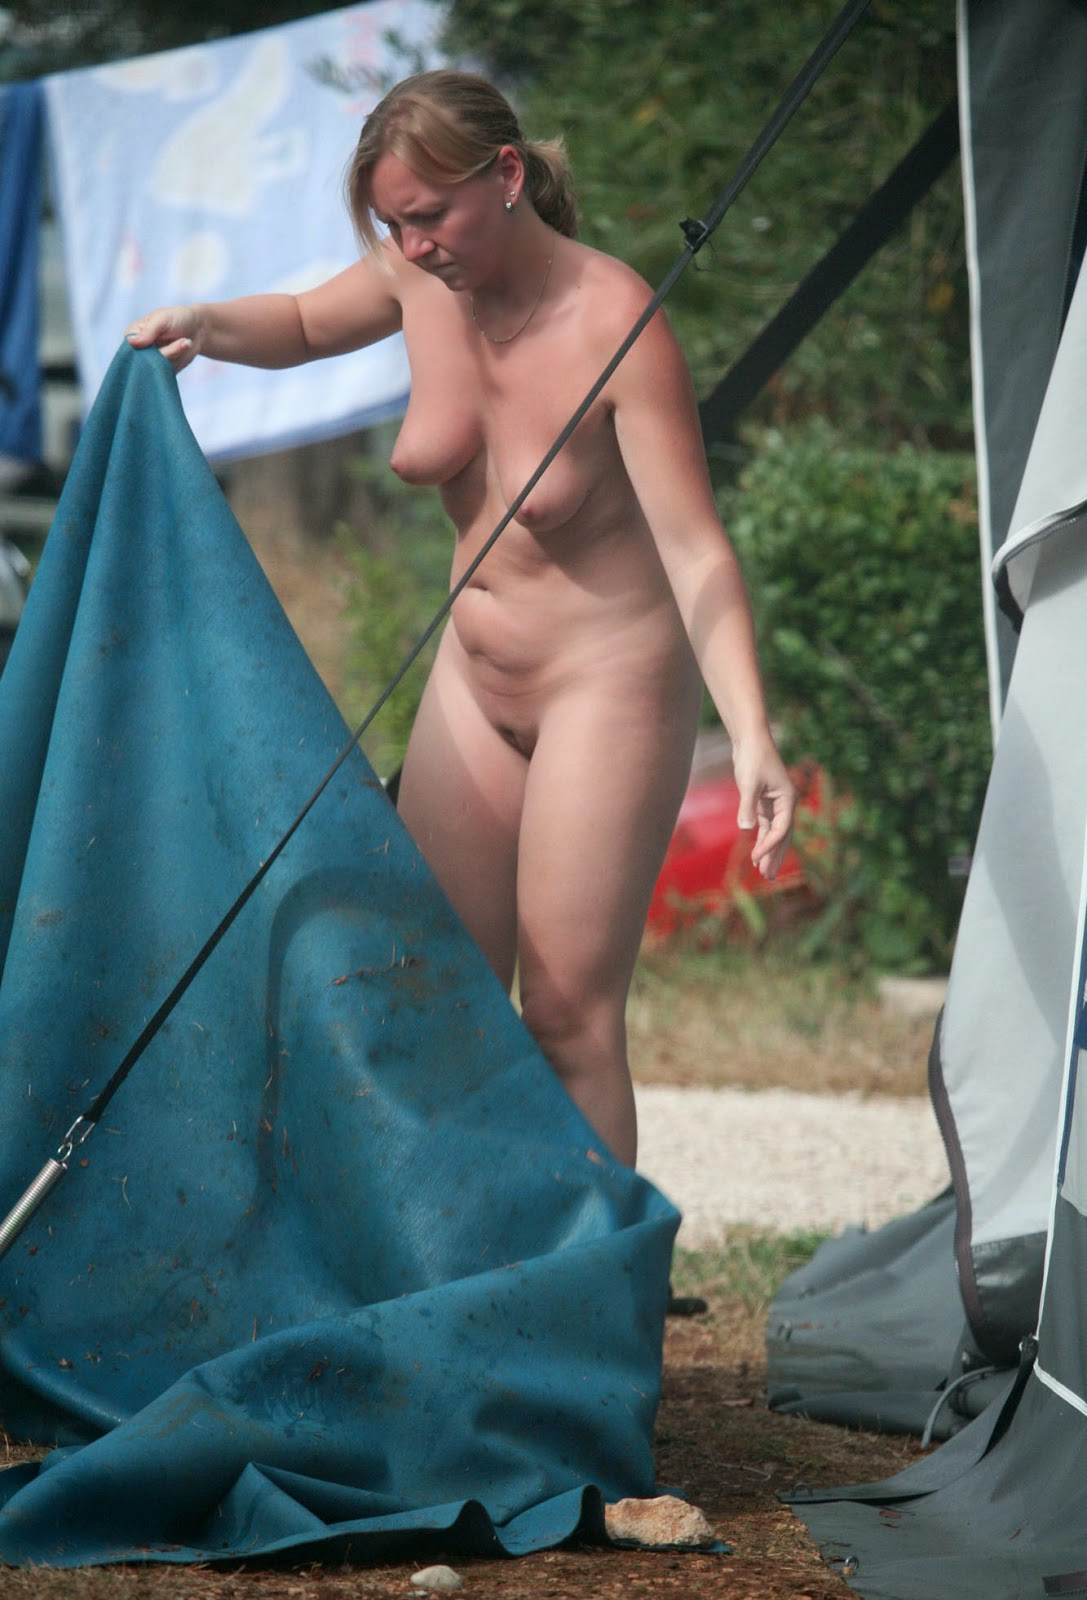 Nudism - Photo - Hq  Nude Camping Bares Area - Family Rest-8807